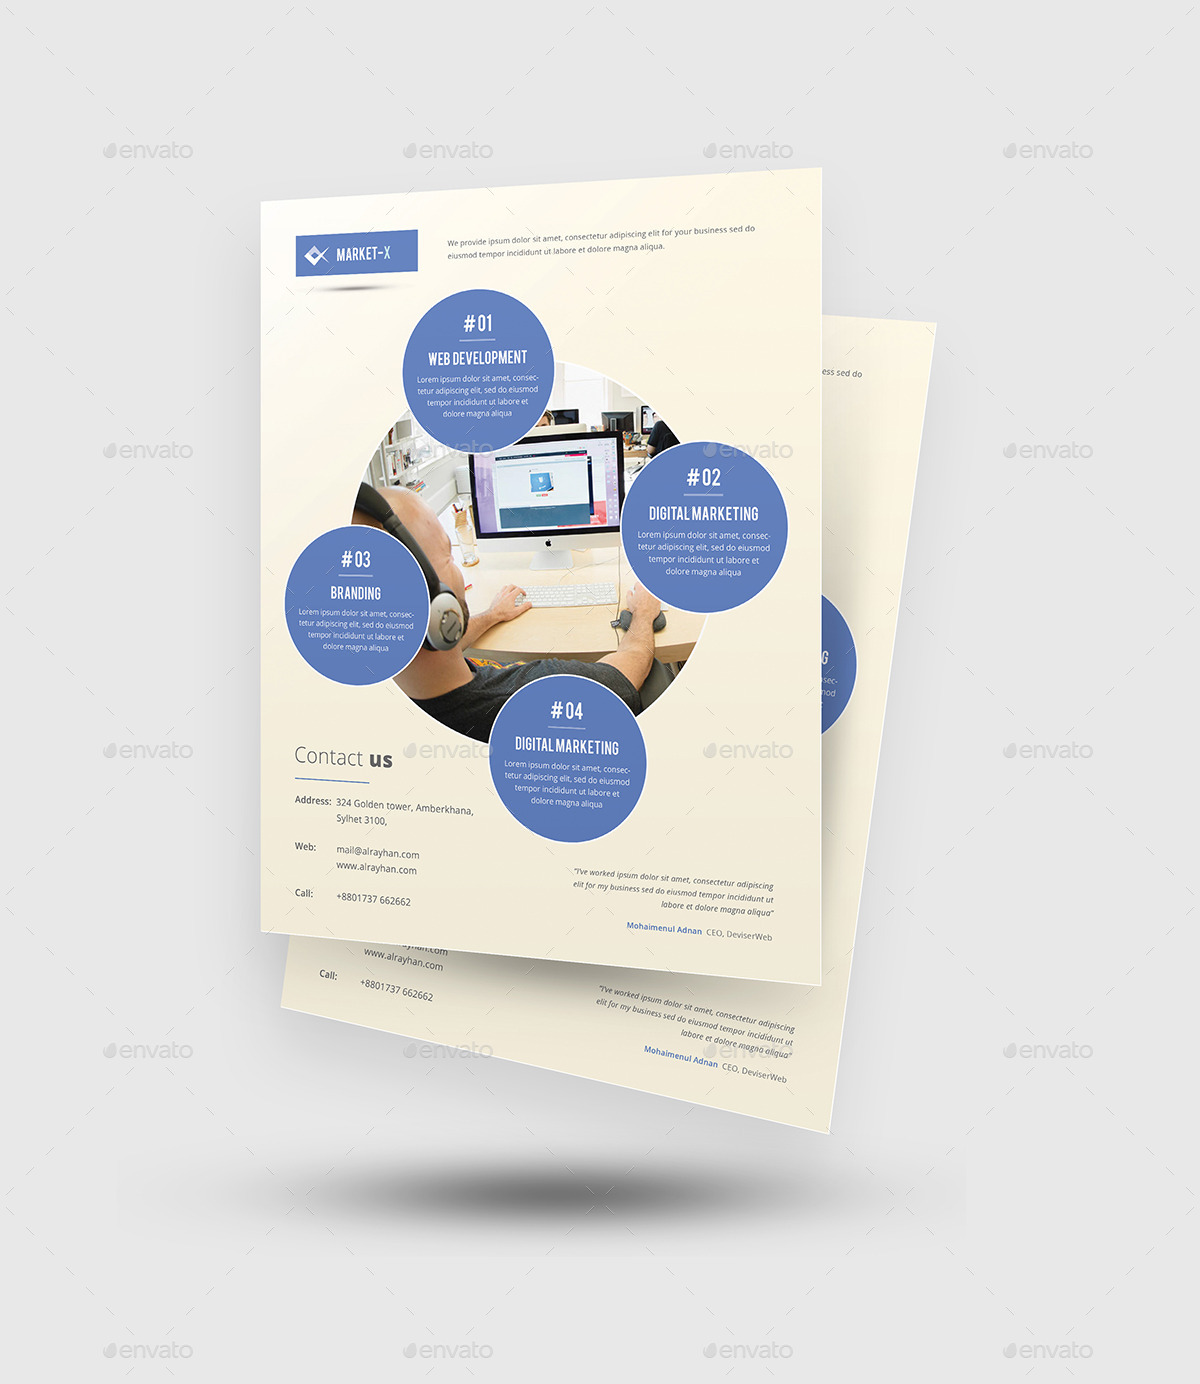 web agency service flyer templates by rtralrayhan graphicriver service flyer templates corporate flyers middot 01 creative web agency service flyer templates jpg 02 creative web agency service flyer templates jpg